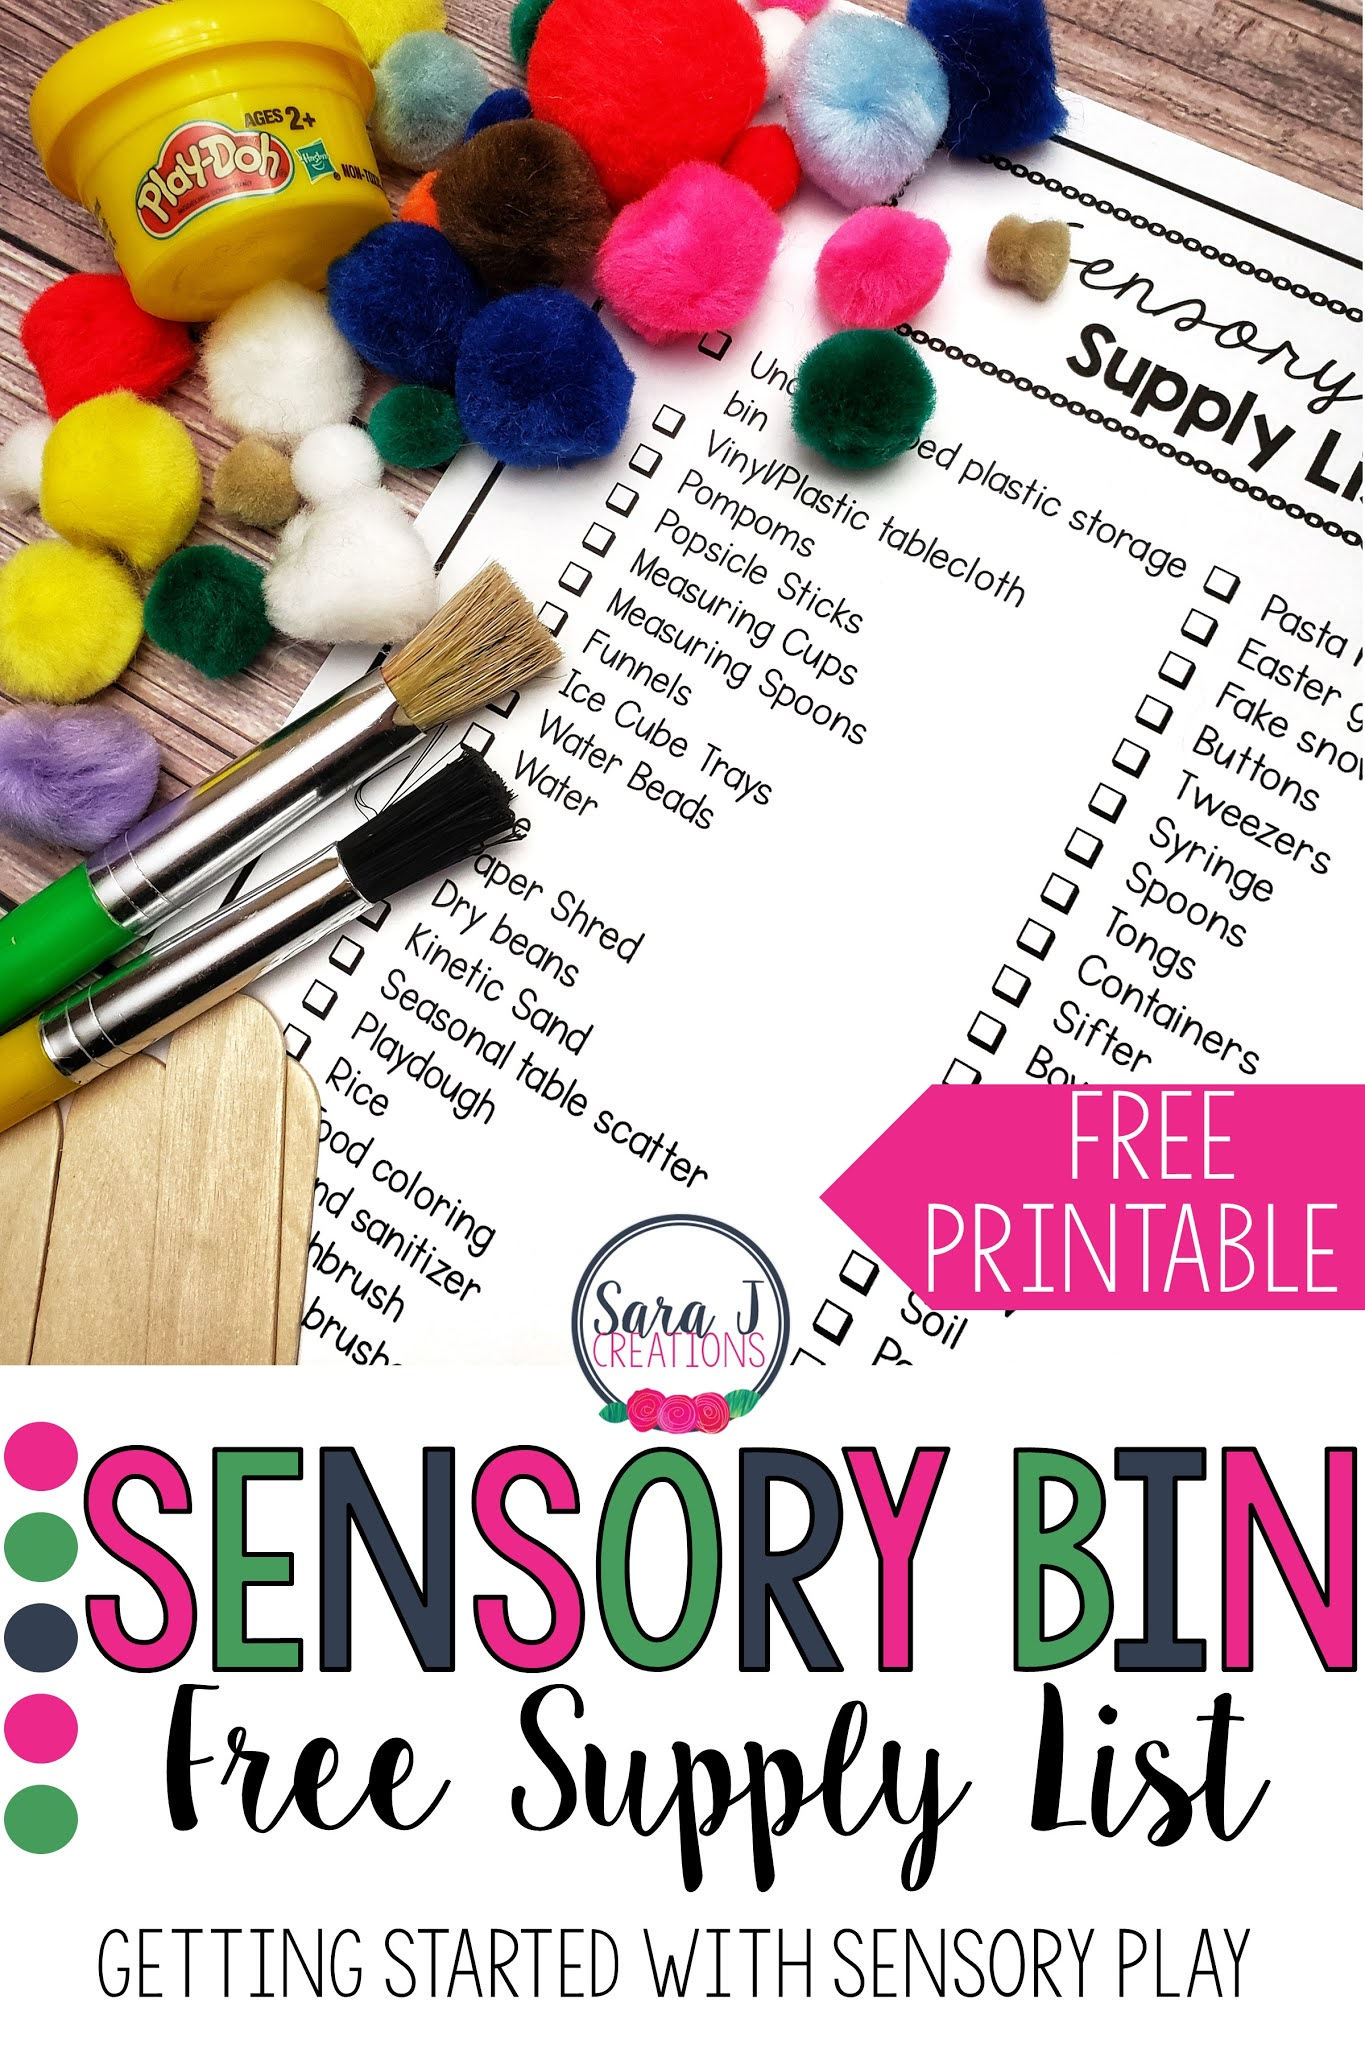 Free supply list to help you get started with sensory bins for your babies, toddlers or preschoolers.